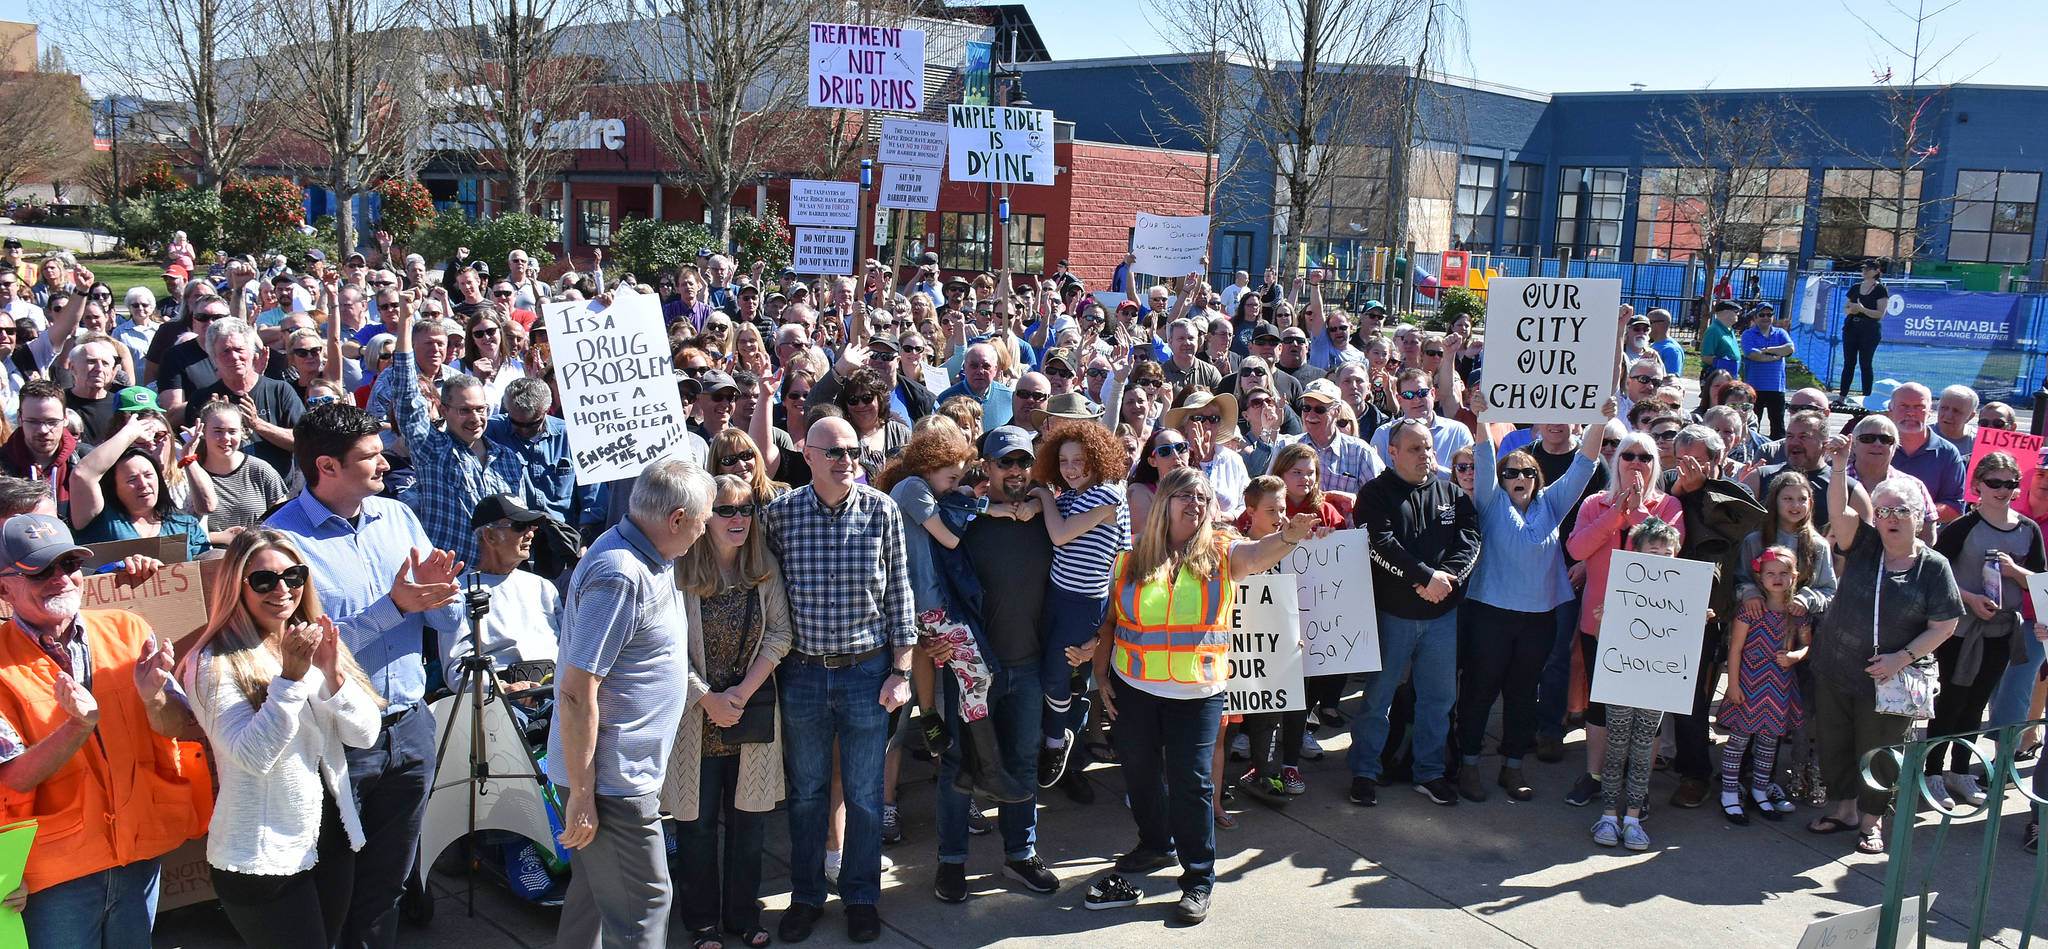 Rally against homeless housing in downtown Maple Ridge